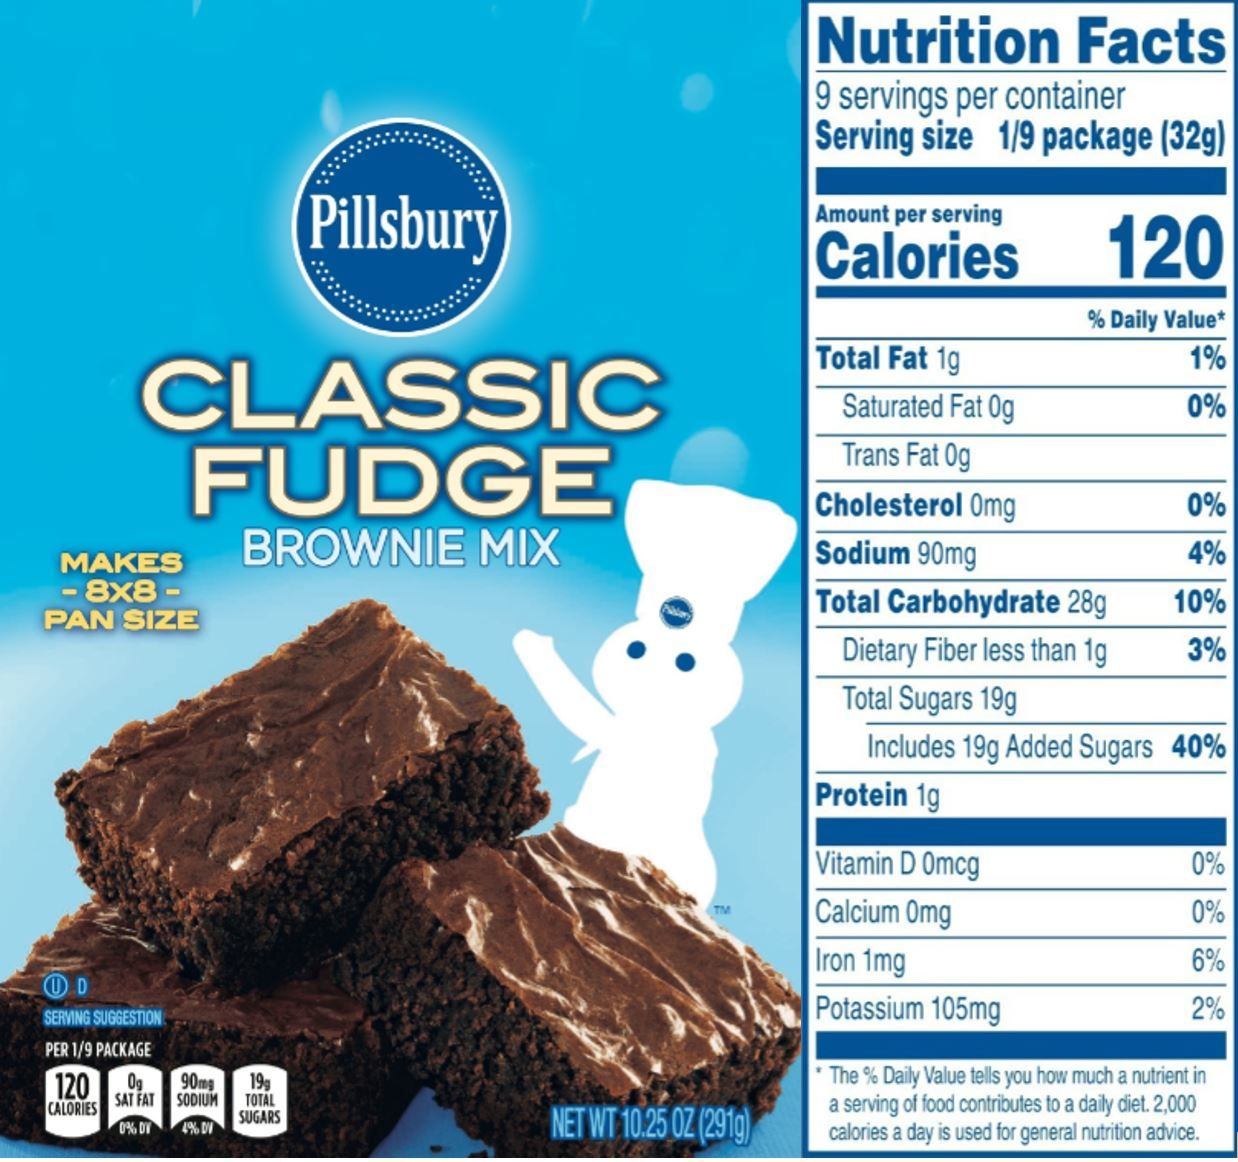 The Updated Nutrition Facts Label As Seen On Pillsbury Classic